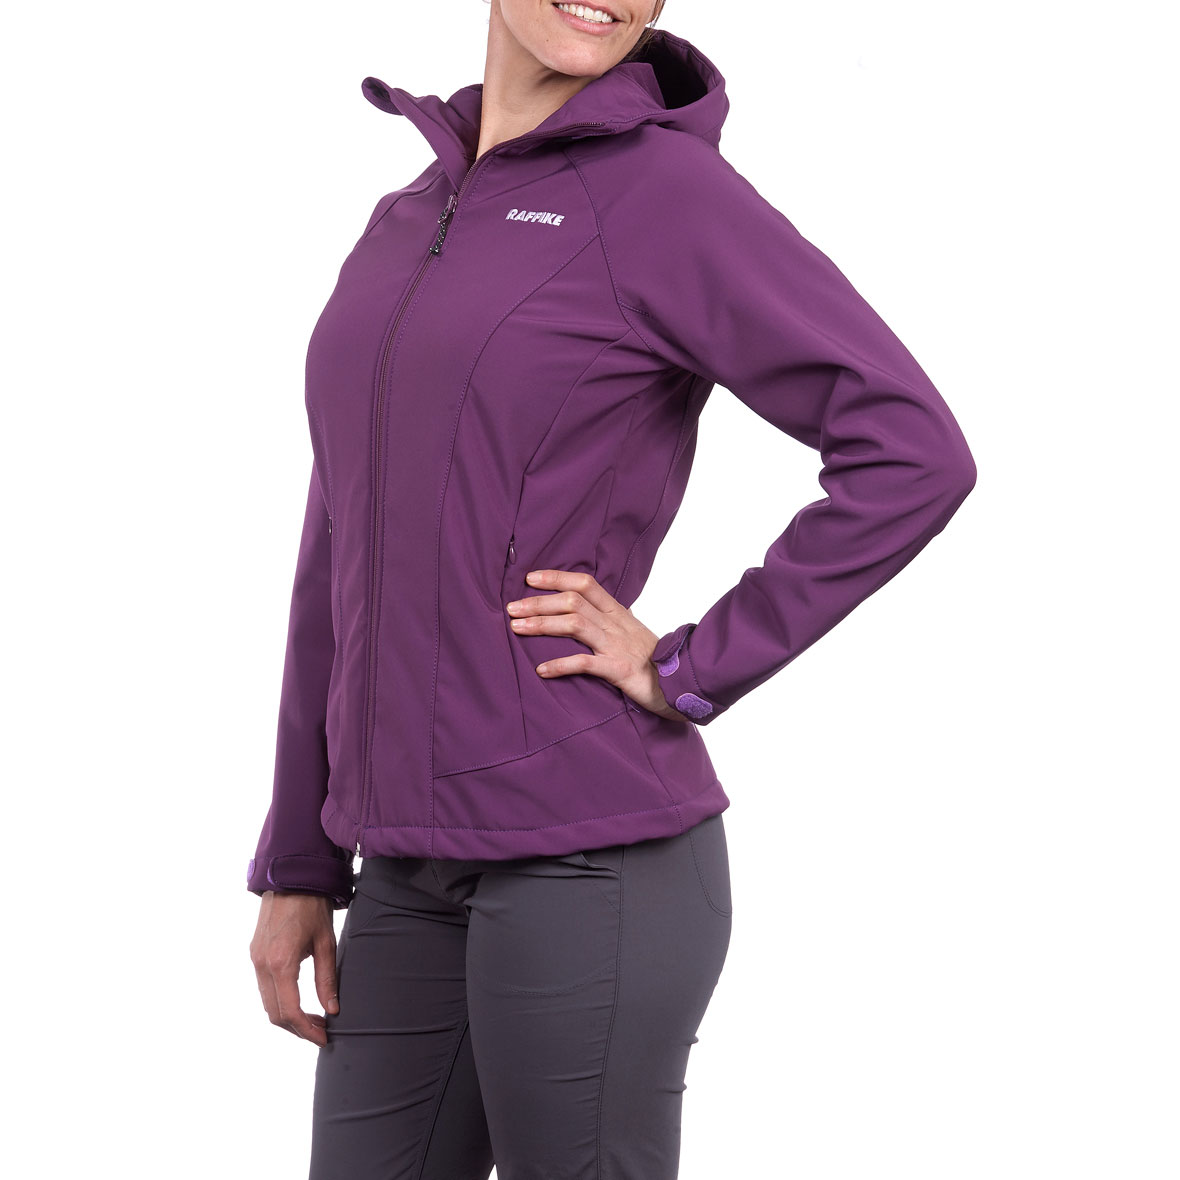 MG 8291 5SO50221210M Campera Absolut Violeta - Campera Absolut